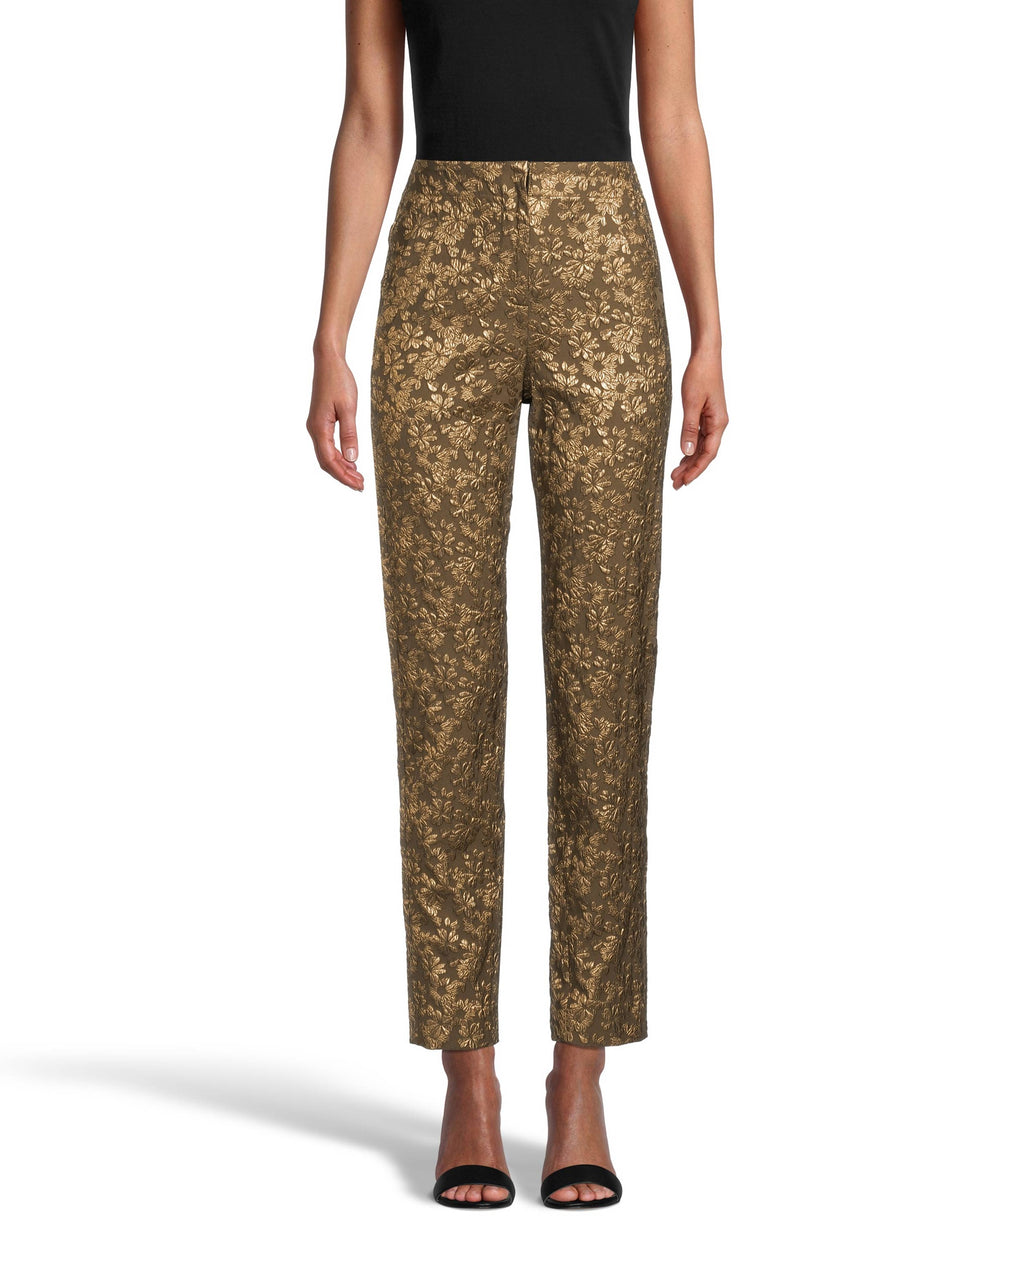 CP18468 - METALLIC FLORAL PANT - bottoms - pants - These pants are perfectly tailored and slightly cropped for a sleek and slimming silhouette. Decorated with ornate metallic floral details throughout. Add 1 line break Stylist tip: Pair back with the matching blazer for a monochrome suiting moment.